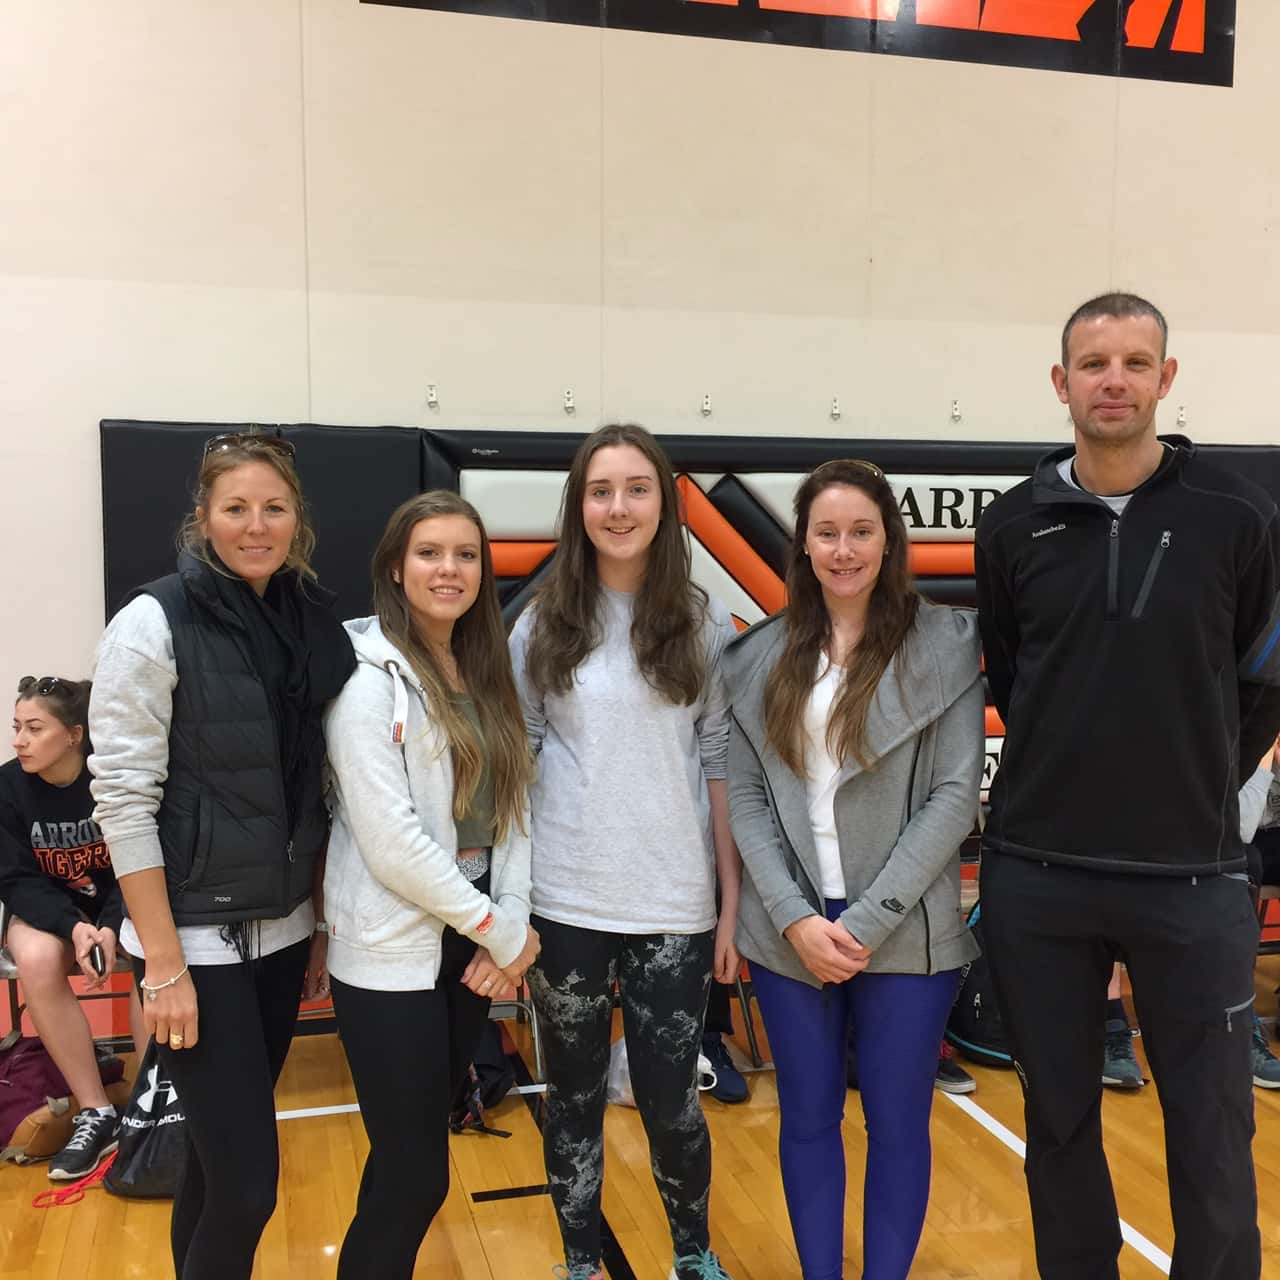 Scottish Students And Teachers Visit Carroll In Cultural